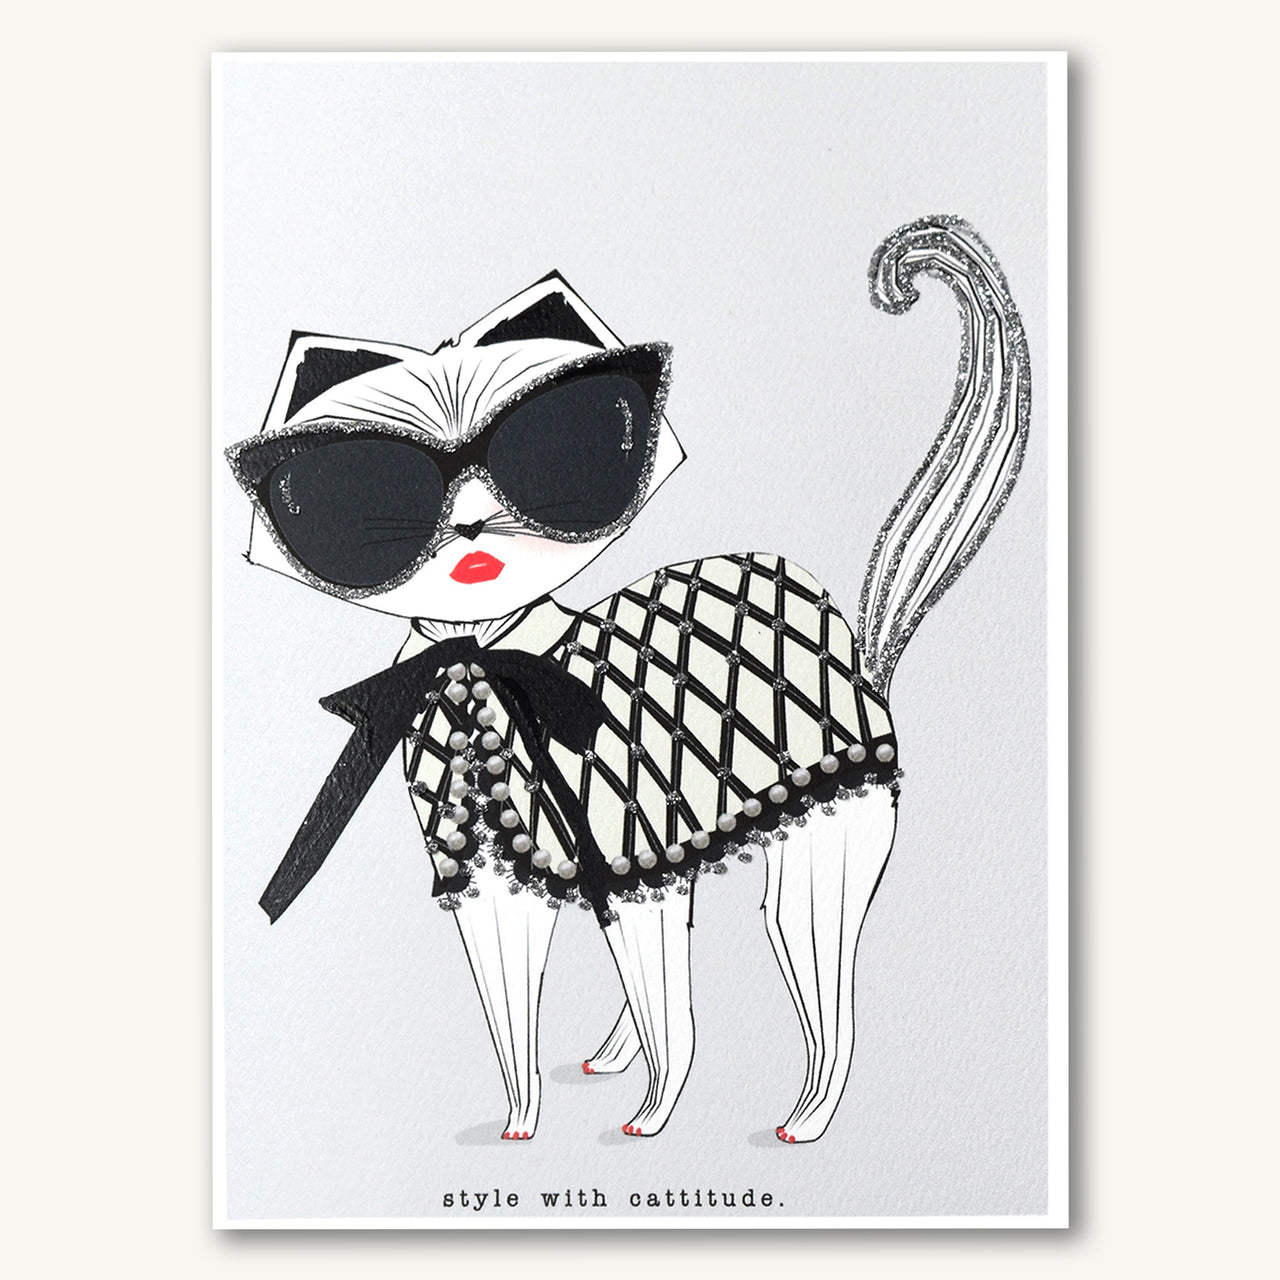 Style With Cattitude